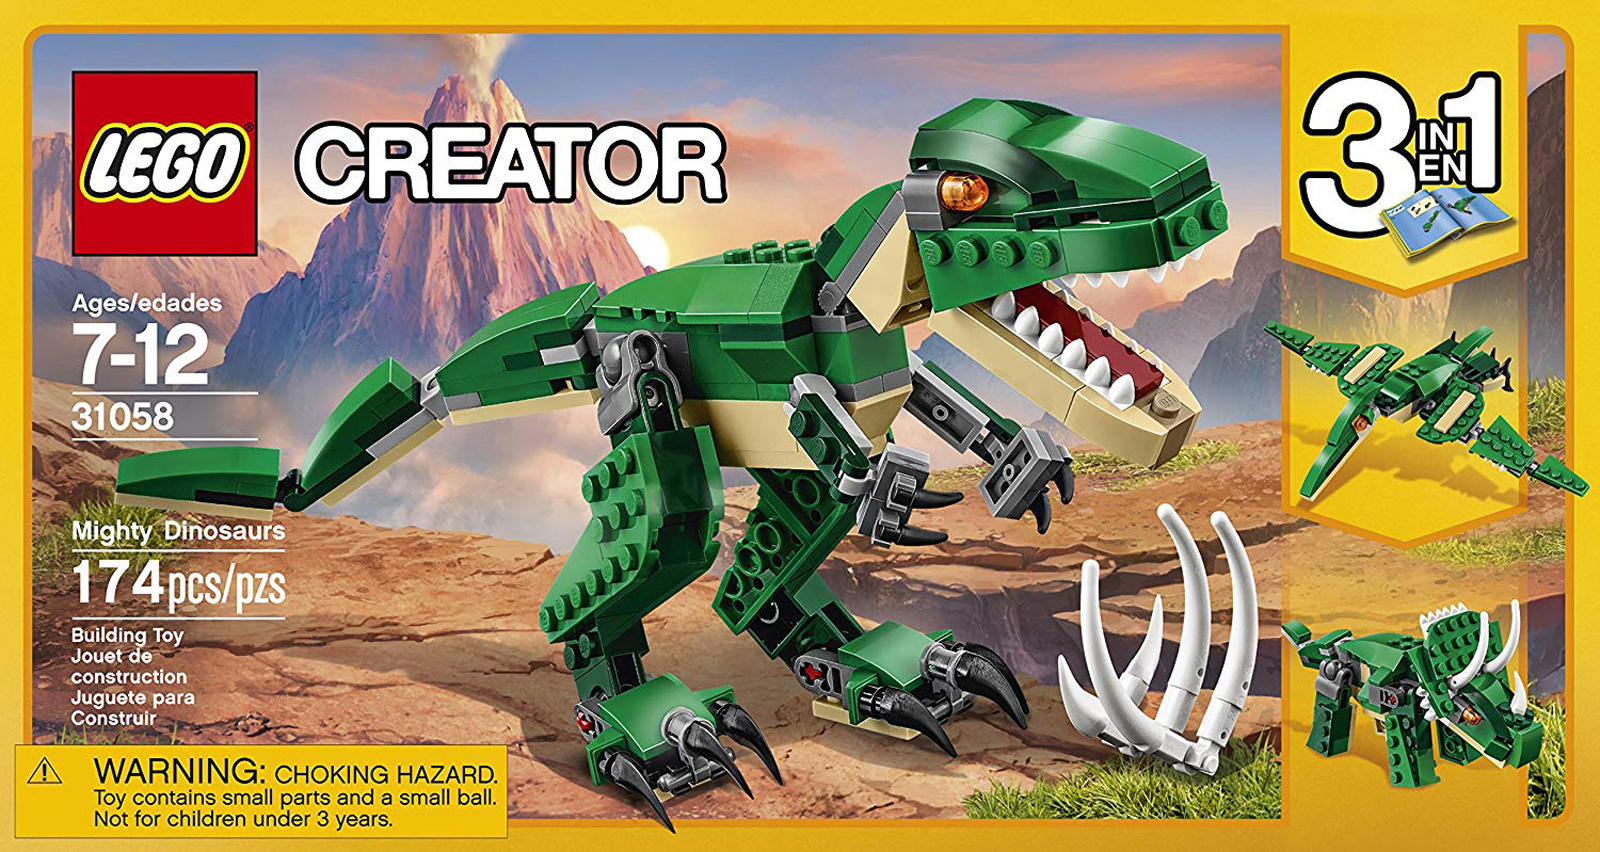 Dinosaurs Mdf Toy Box Childrens Storage Toys Games Books: LEGO Creator 31058 Mighty Dinosaurs 3-in-1 T. Rex Or